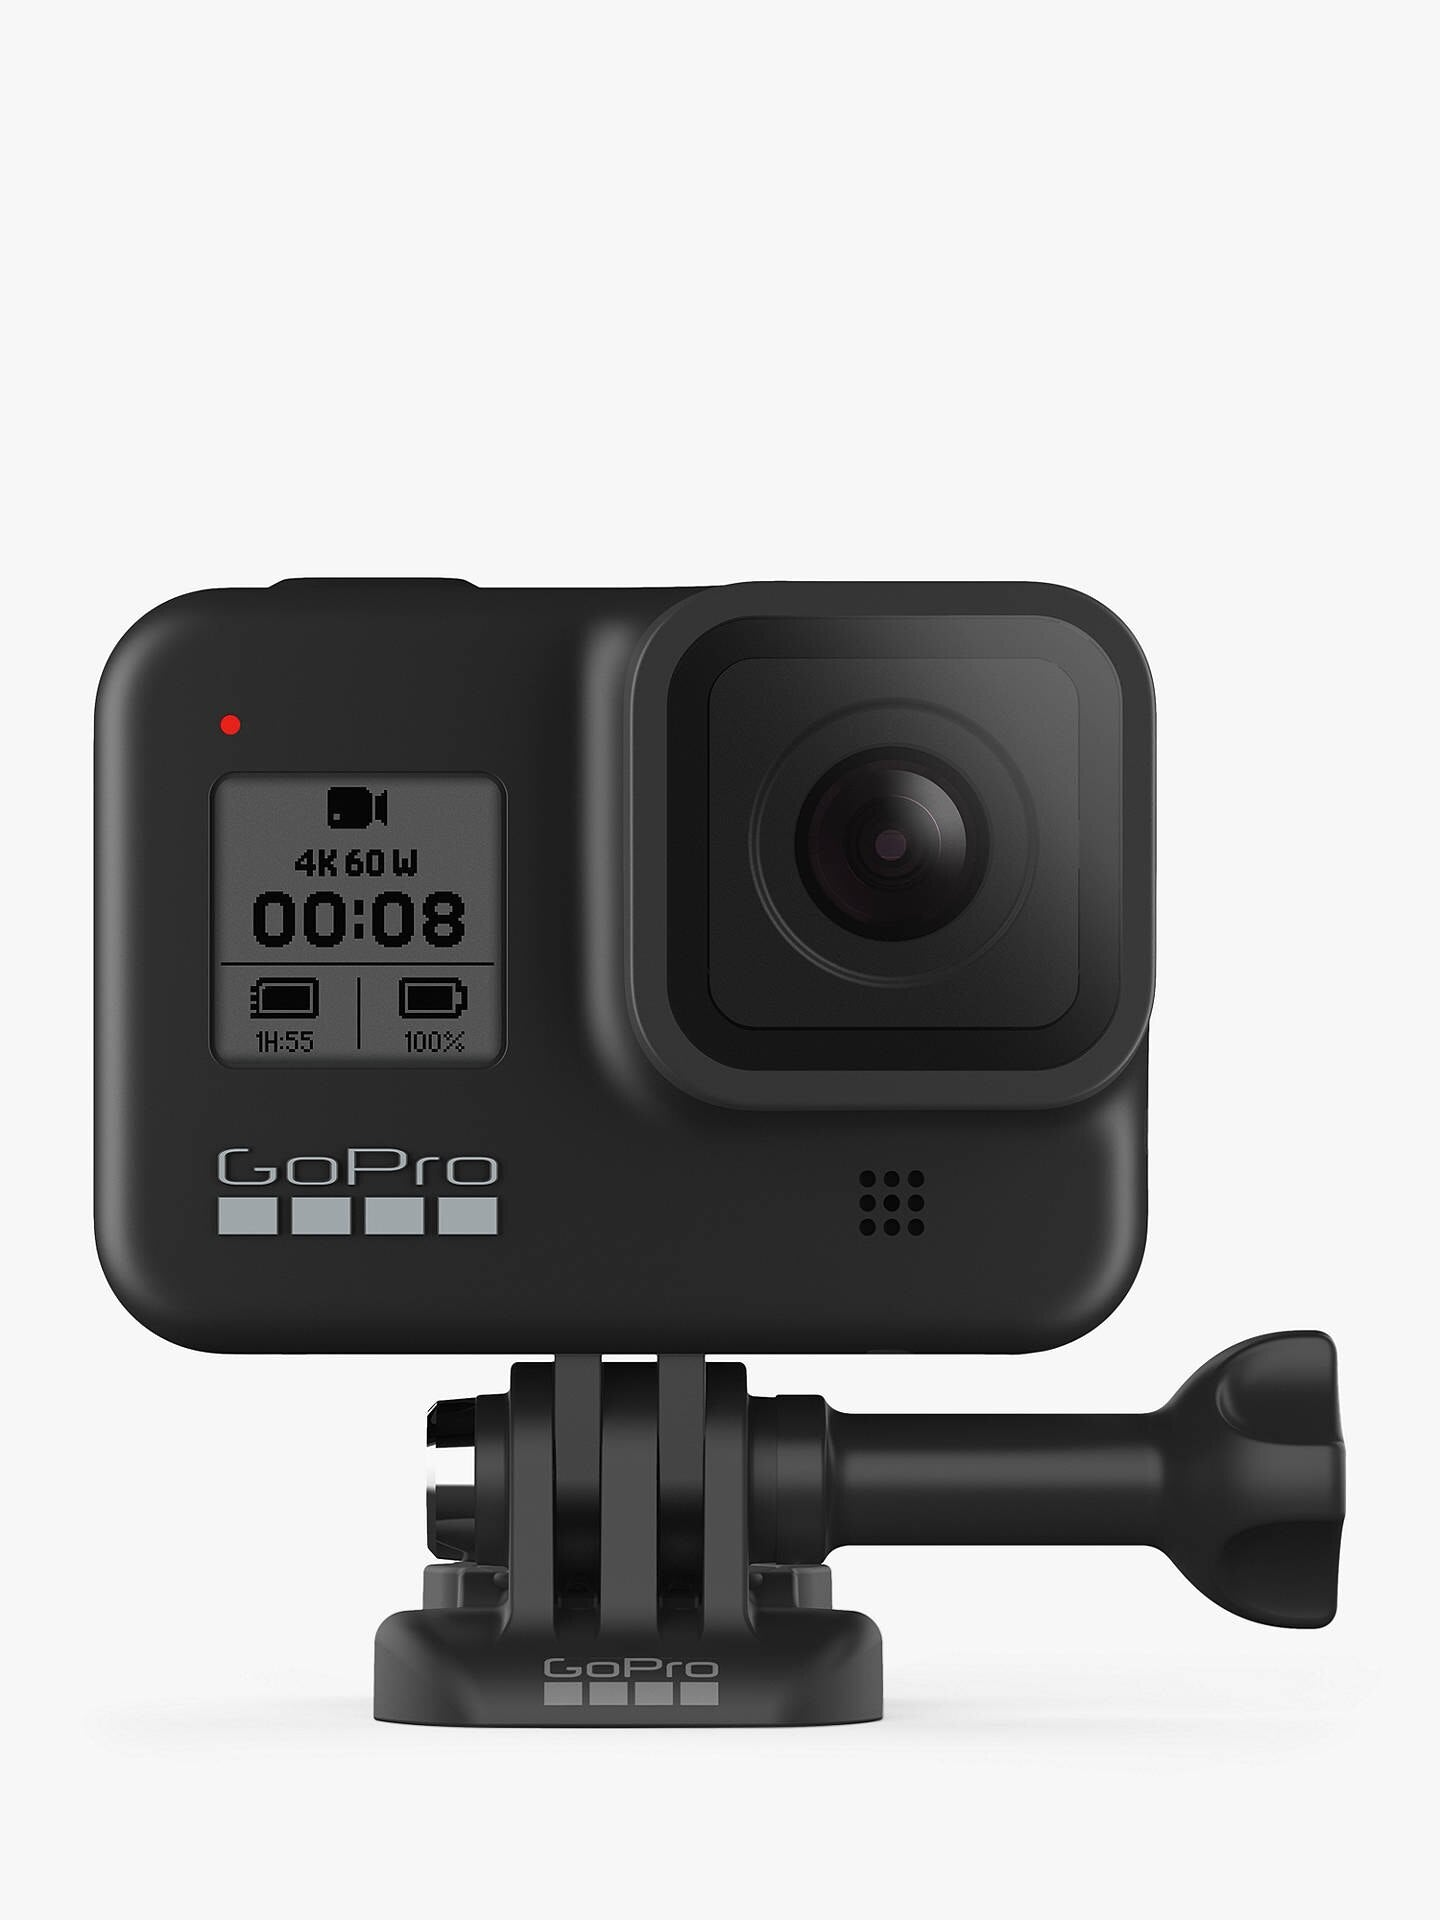 GoPro HERO8 Black Camcorder - Black (Brand New)